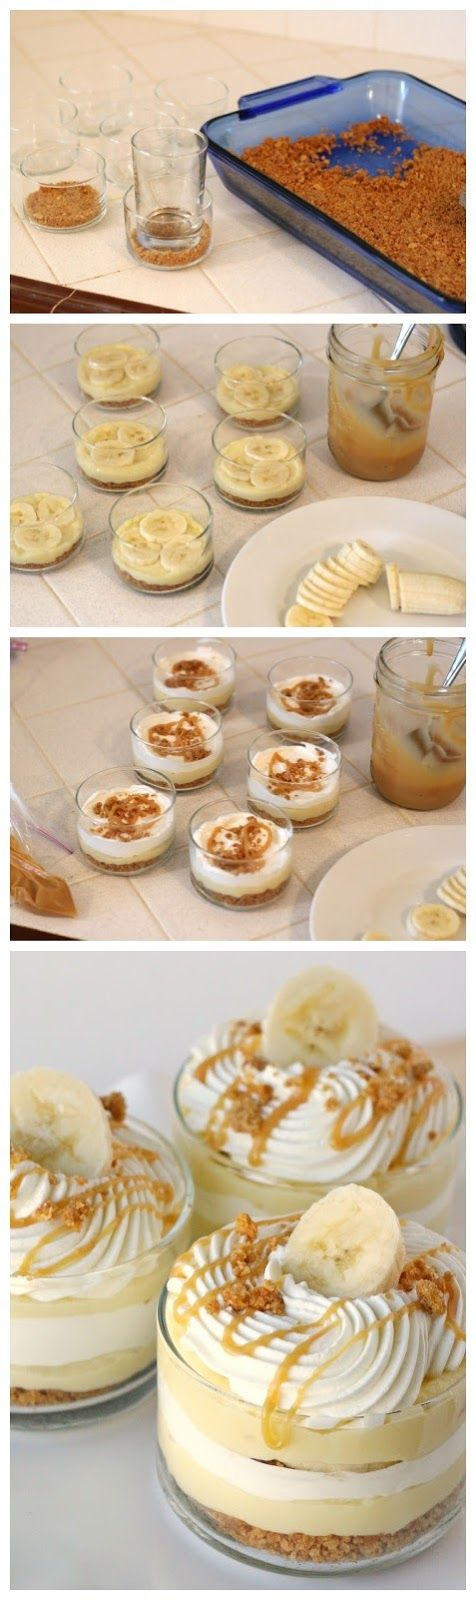 Recipe Best: Banana Caramel Cream Dessert Love the individual little glasses for these